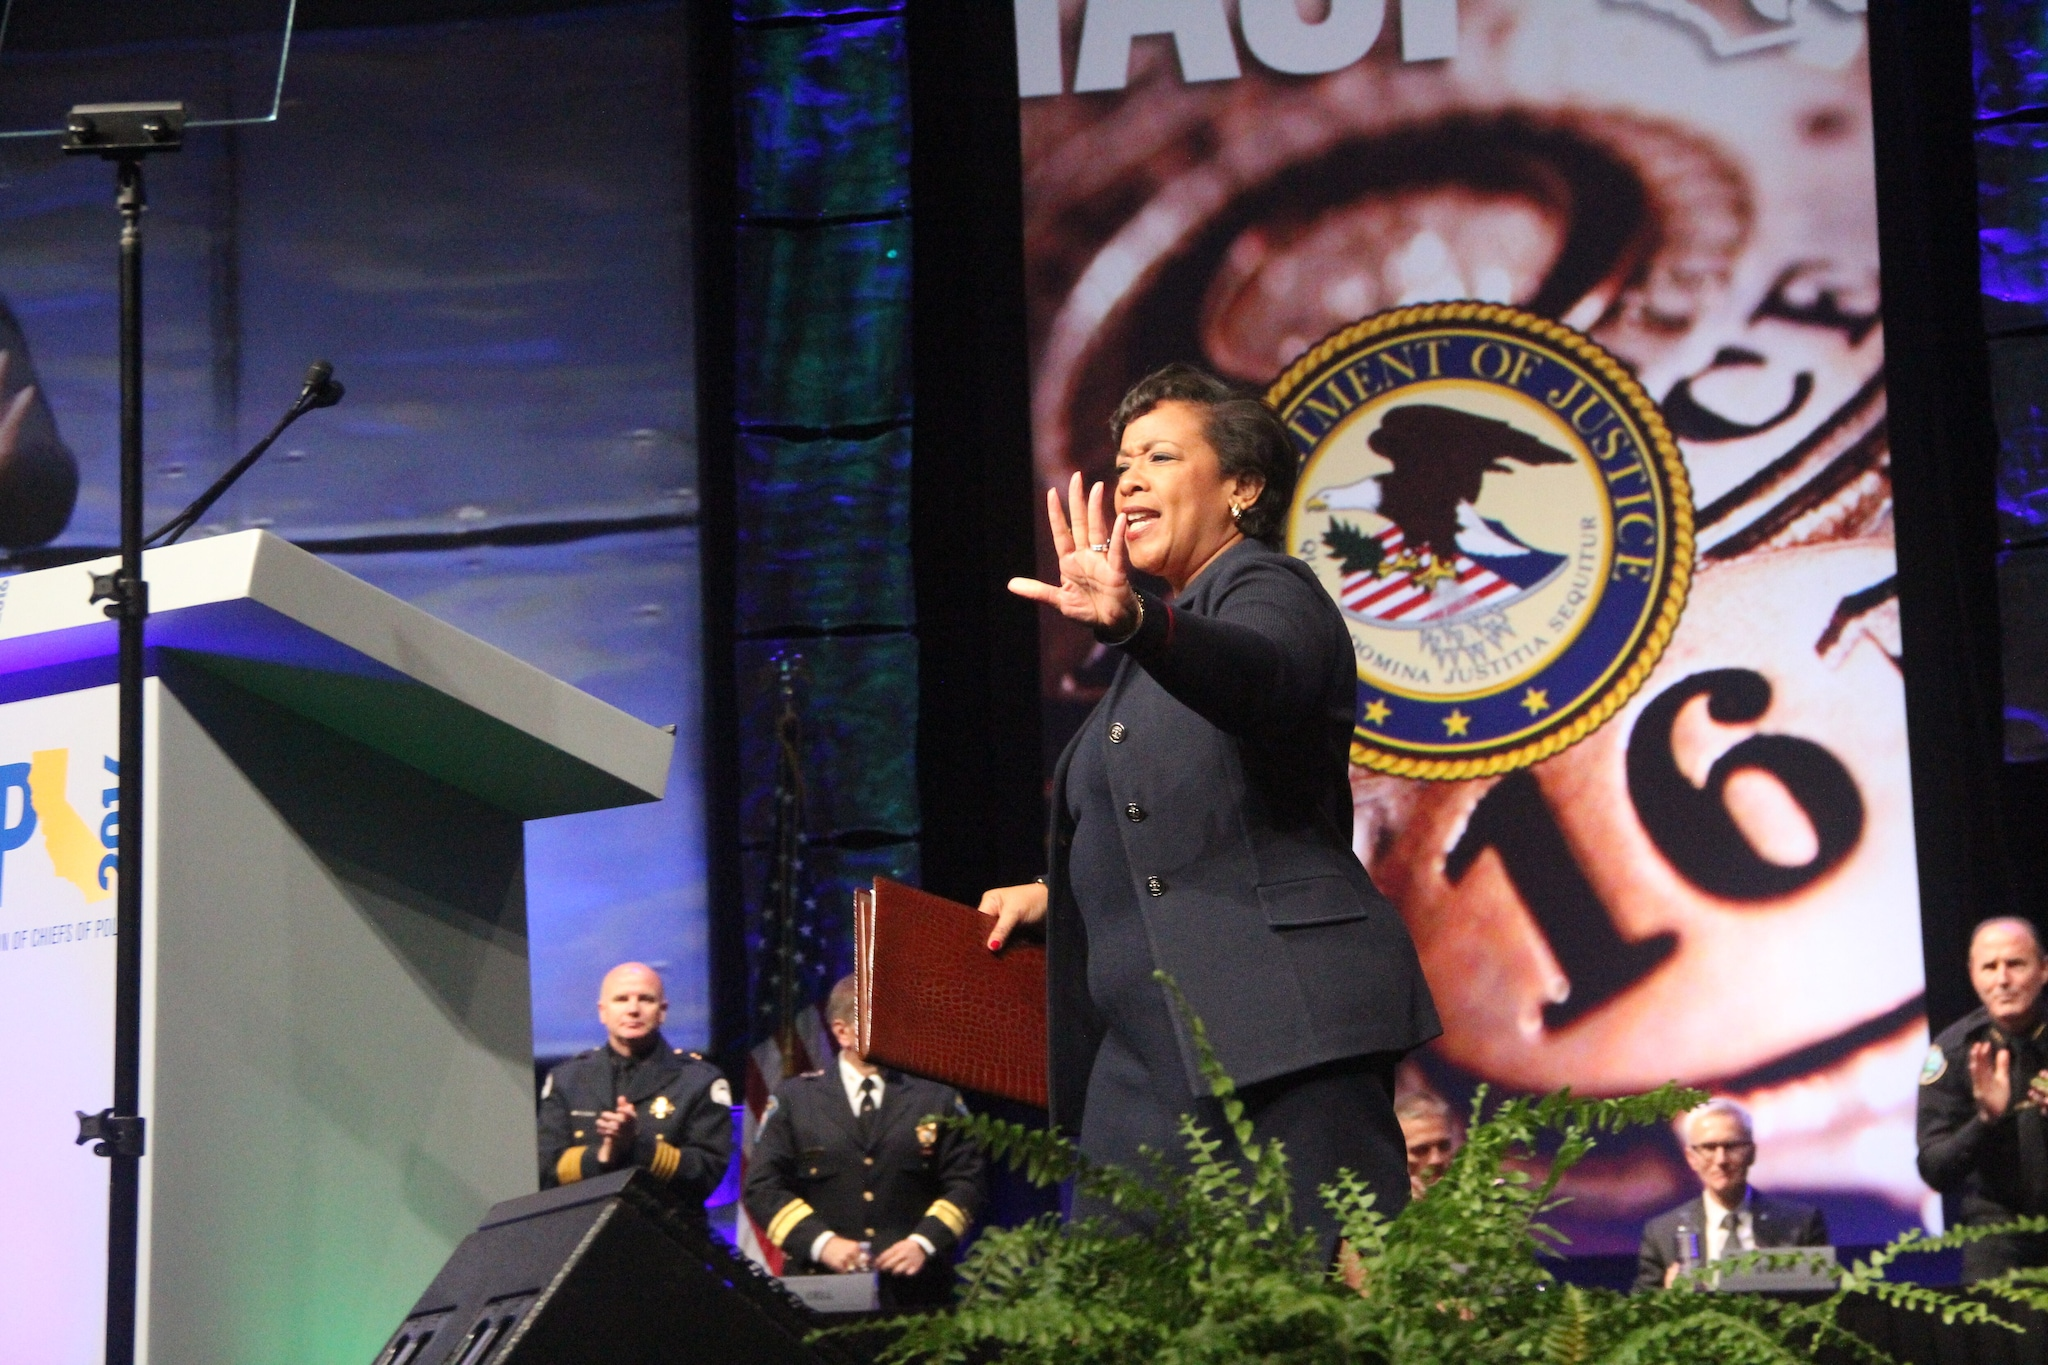 U.S. Attorney General Loretta Lynch waves to a crowd of several thousand law enforcement professionals and others as she takes the podium during the National Association of Police Chiefs annual convention in San Diego Oct. 15-18, 2015. (Photo: Jared Morgan / Guns.com)